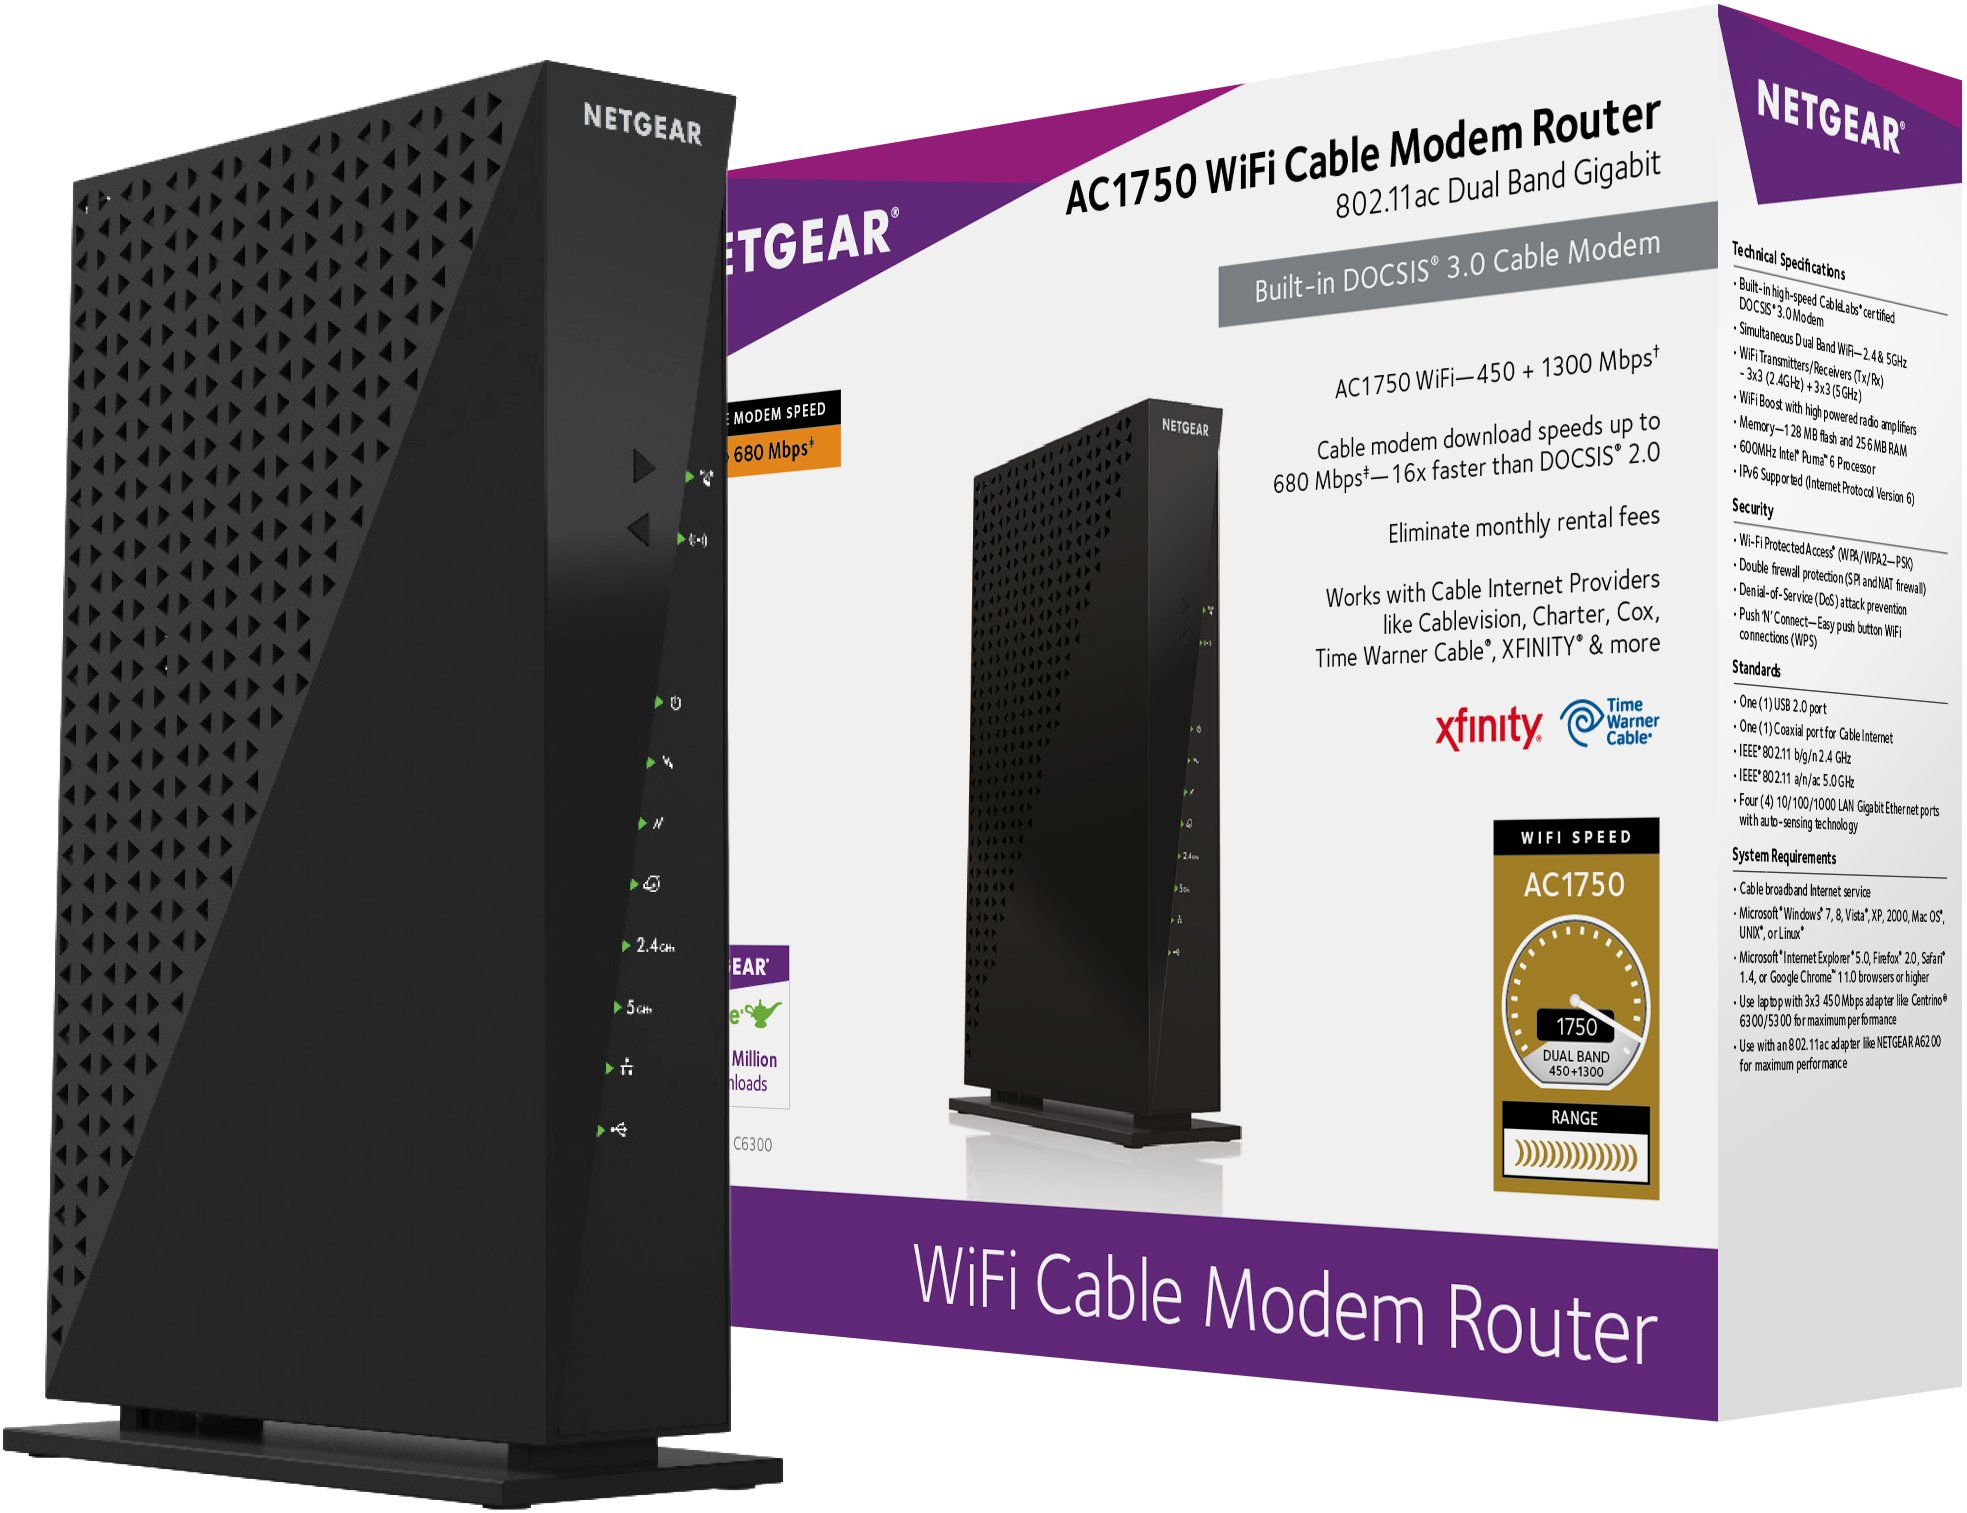 Netgear C6300-100NAS AC1750 (16x4) DOCSIS 3.0 WiFi Cable Modem Router Combo (C6300) Certified for Xfinity from Comcast, Spectrum, Cox, Cablevision & more by NETGEAR